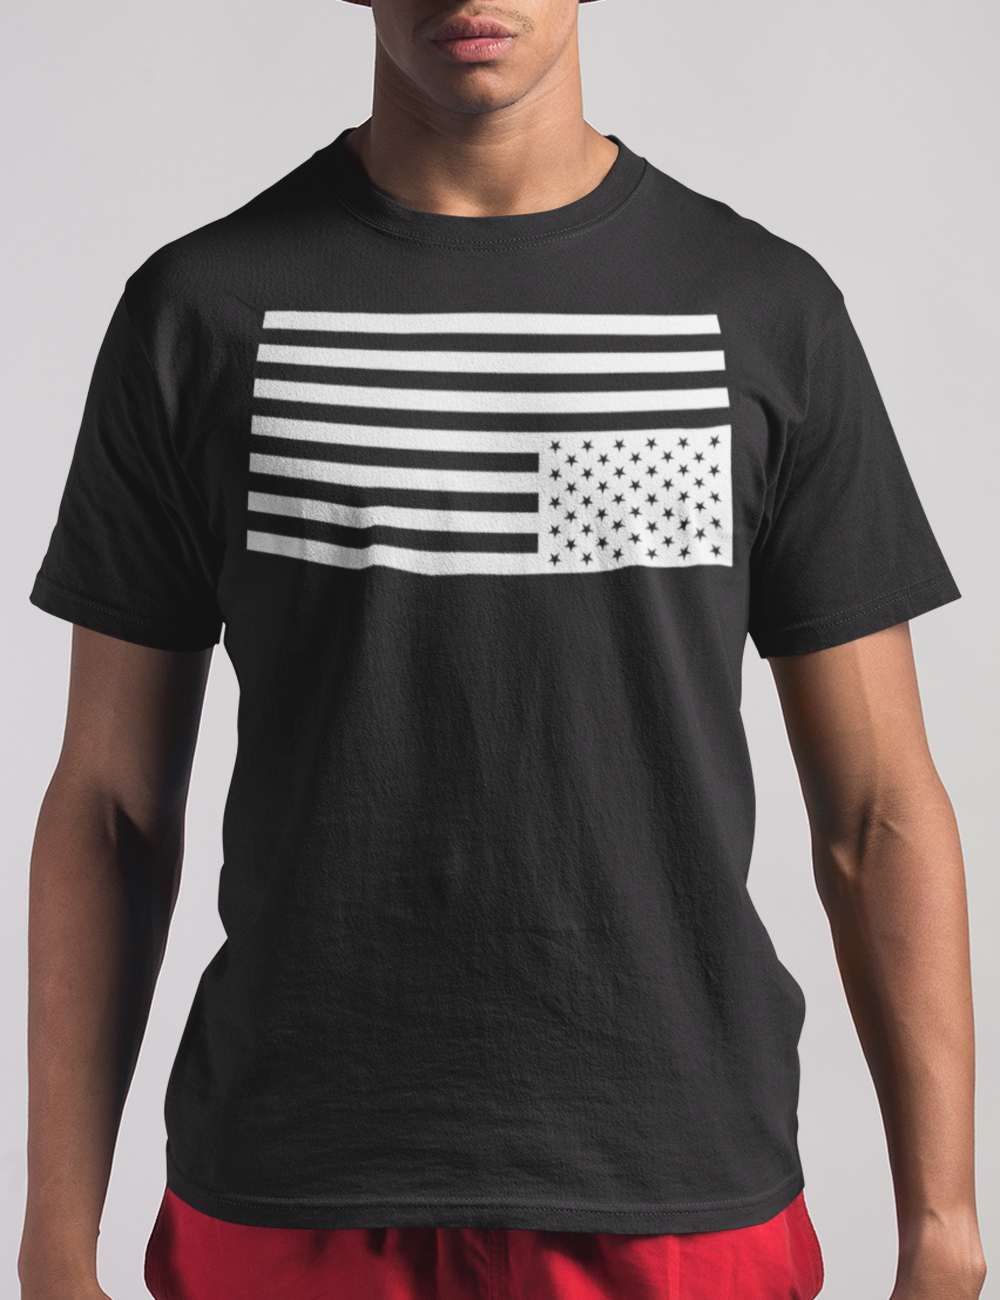 Upside Down American Flag T-Shirt